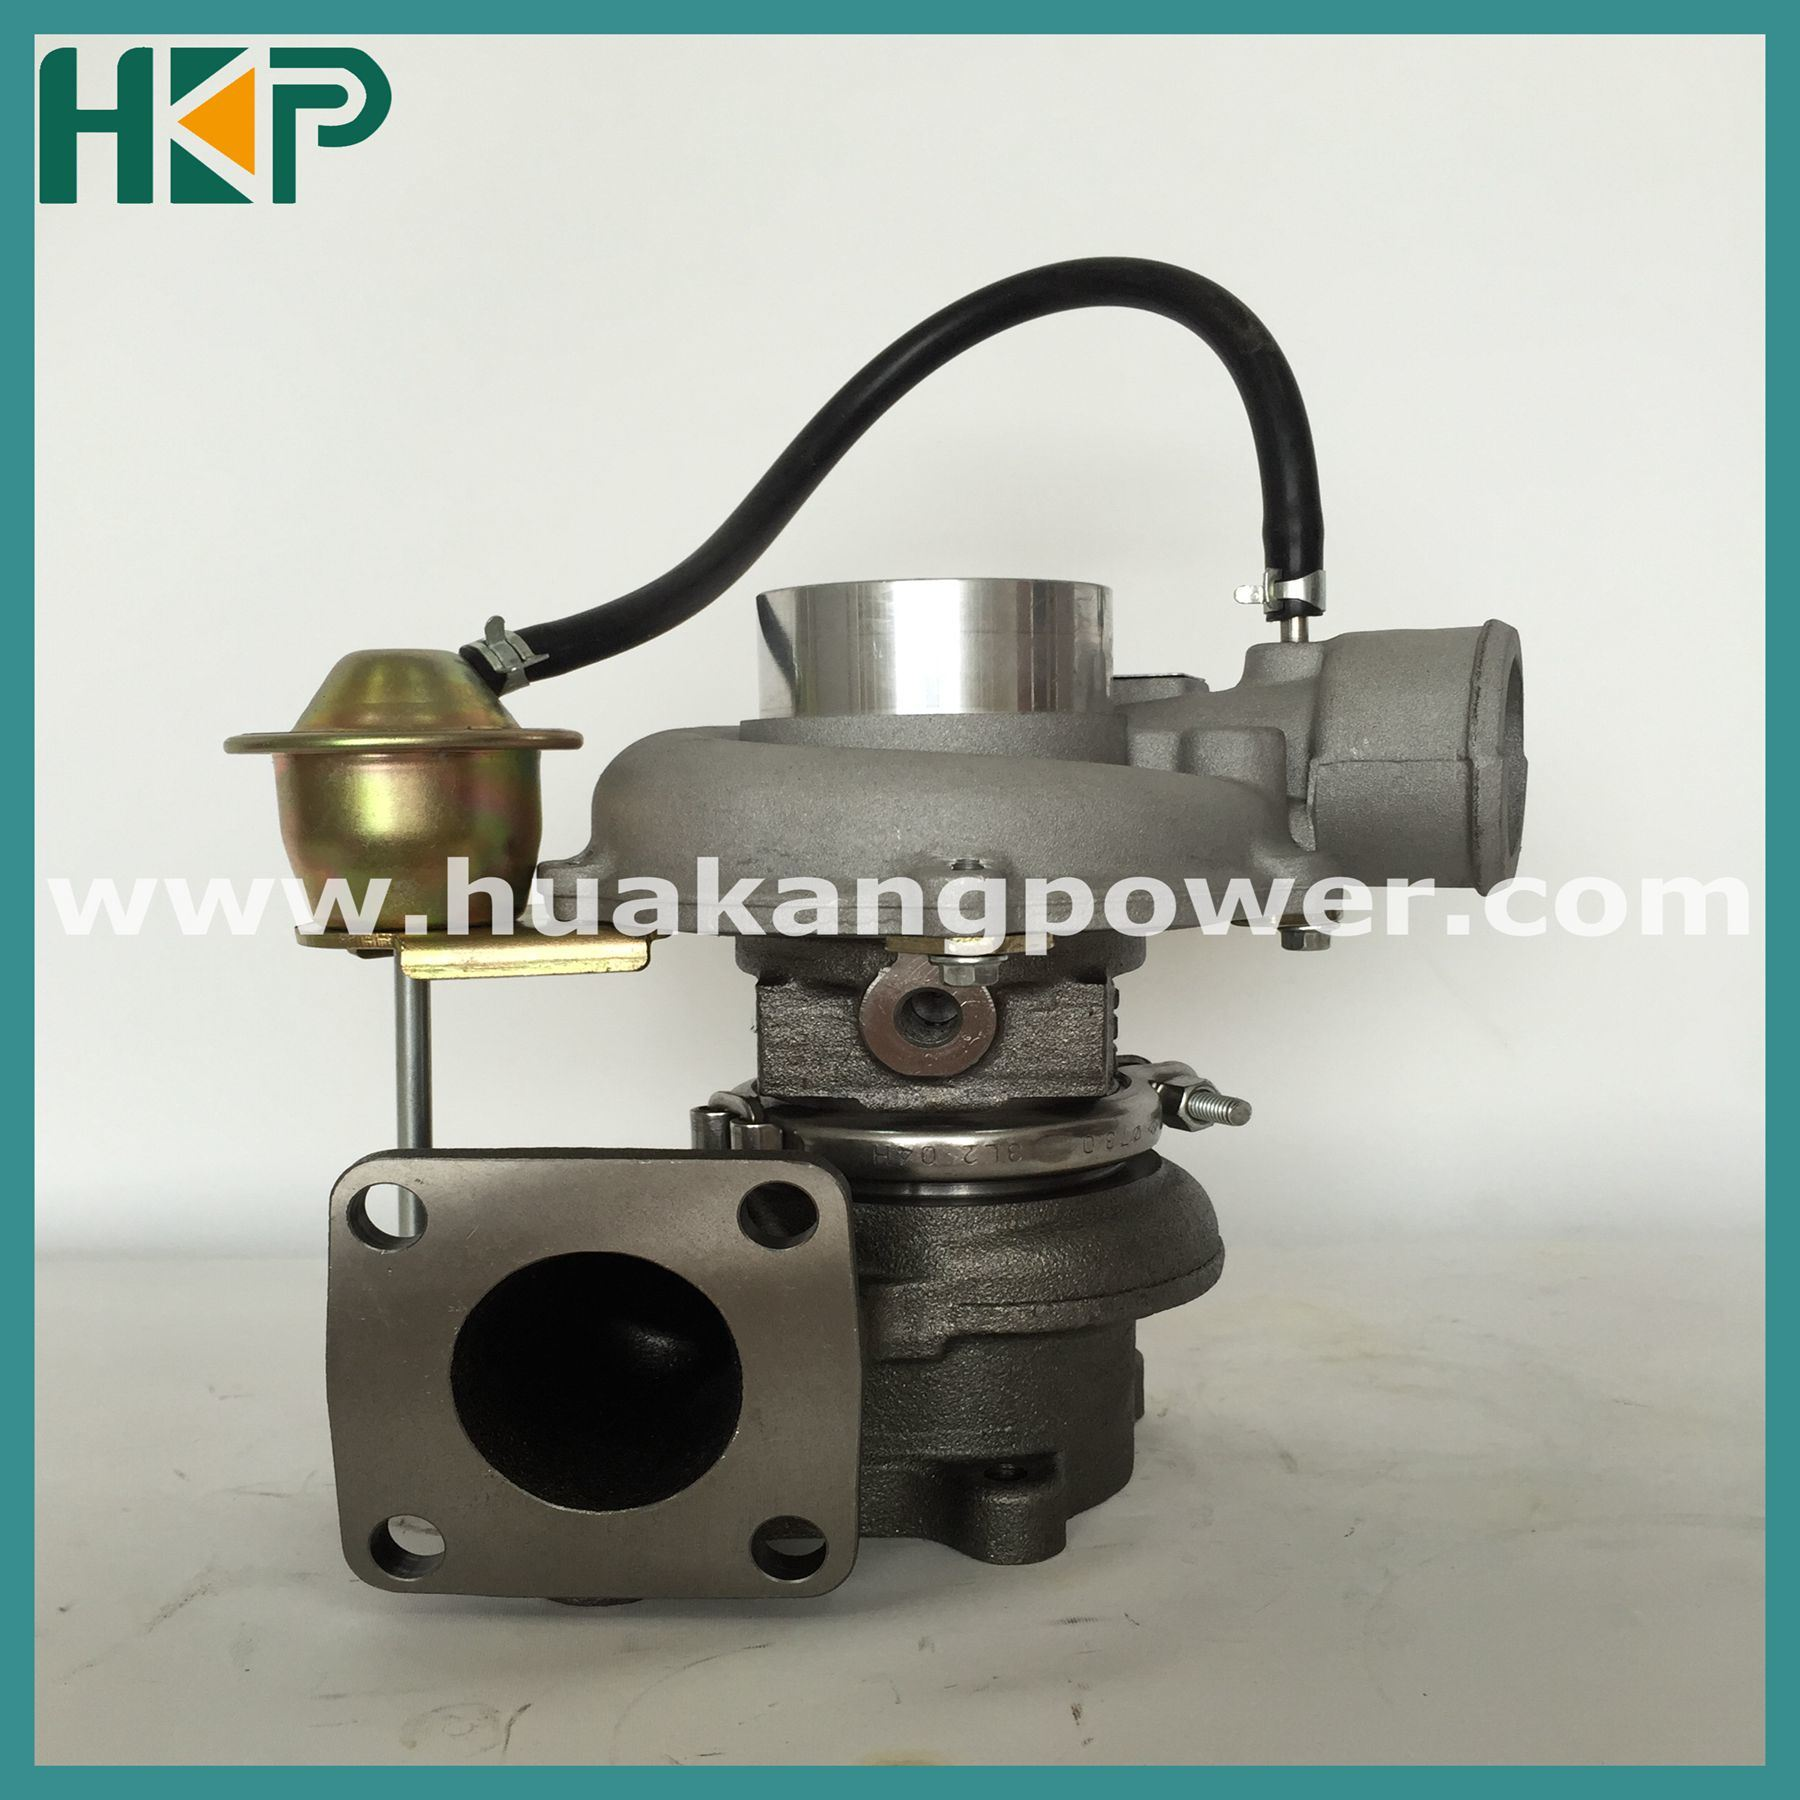 [Hot Item] Rhf4 Vp50 1118300raa Isuzu Turbo/Turbocharger